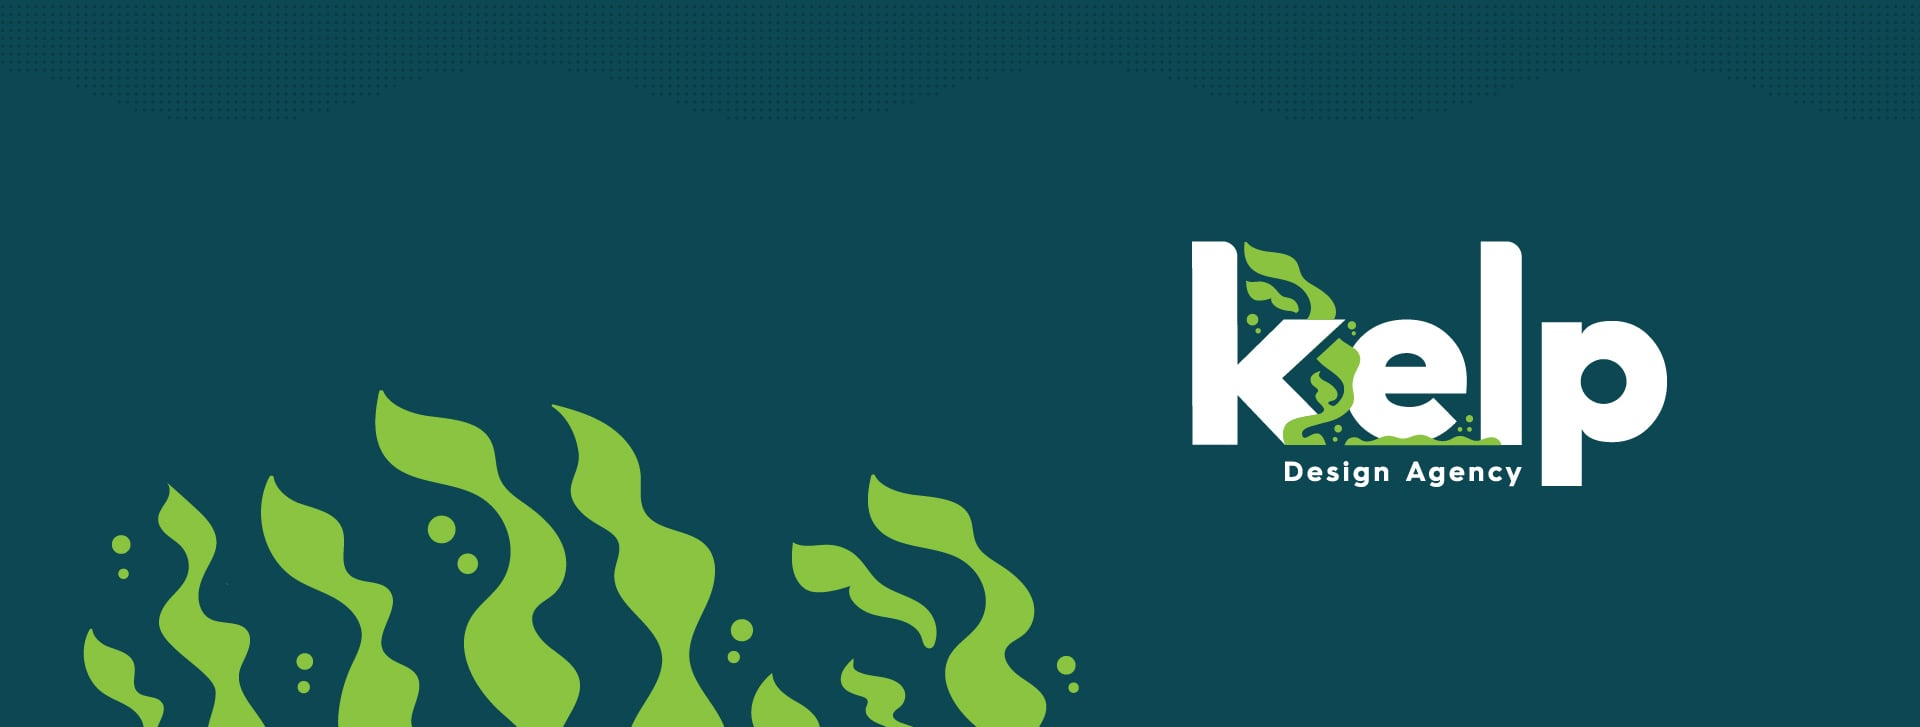 Kelp Design Agency